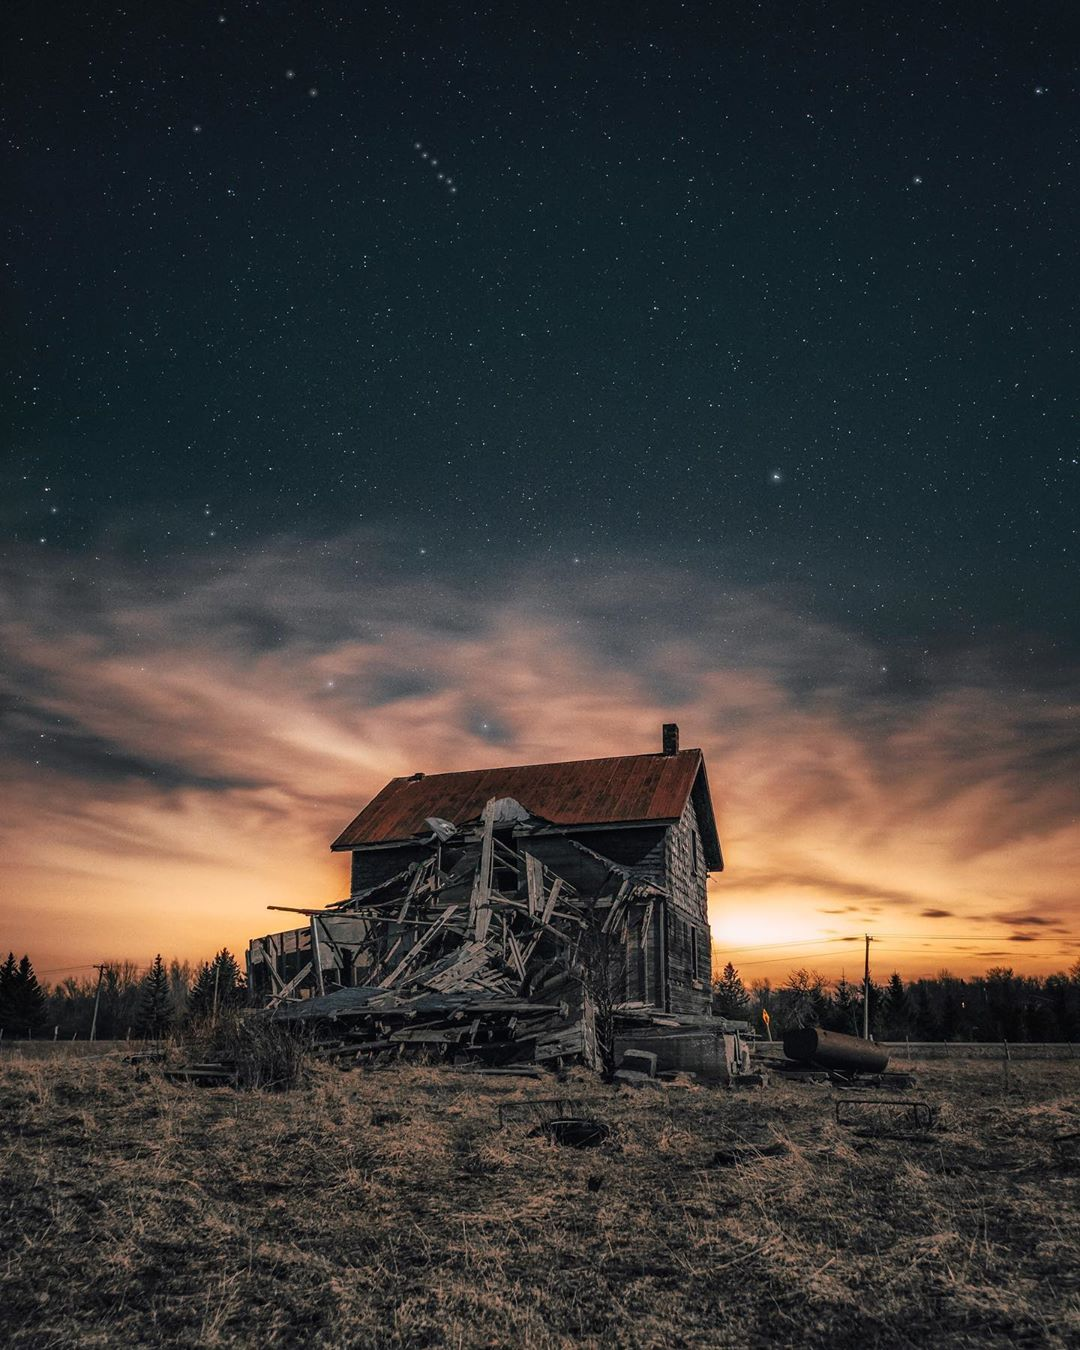 abandoned house with cloudy storm sky above